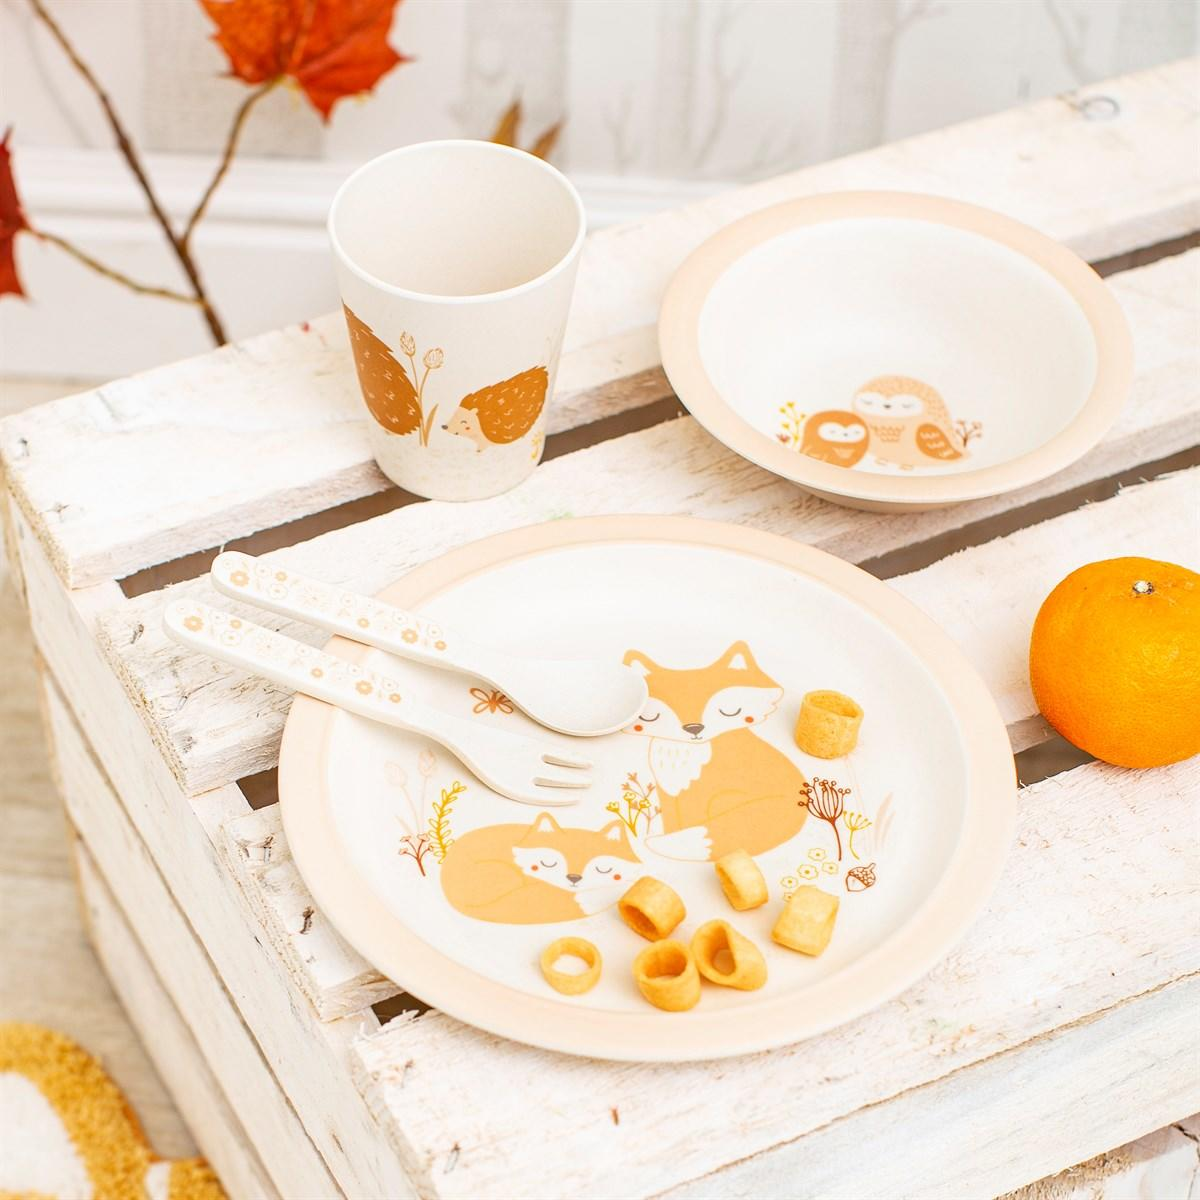 New Woodland Baby Bamboo Tableware Set for Teatime Fun